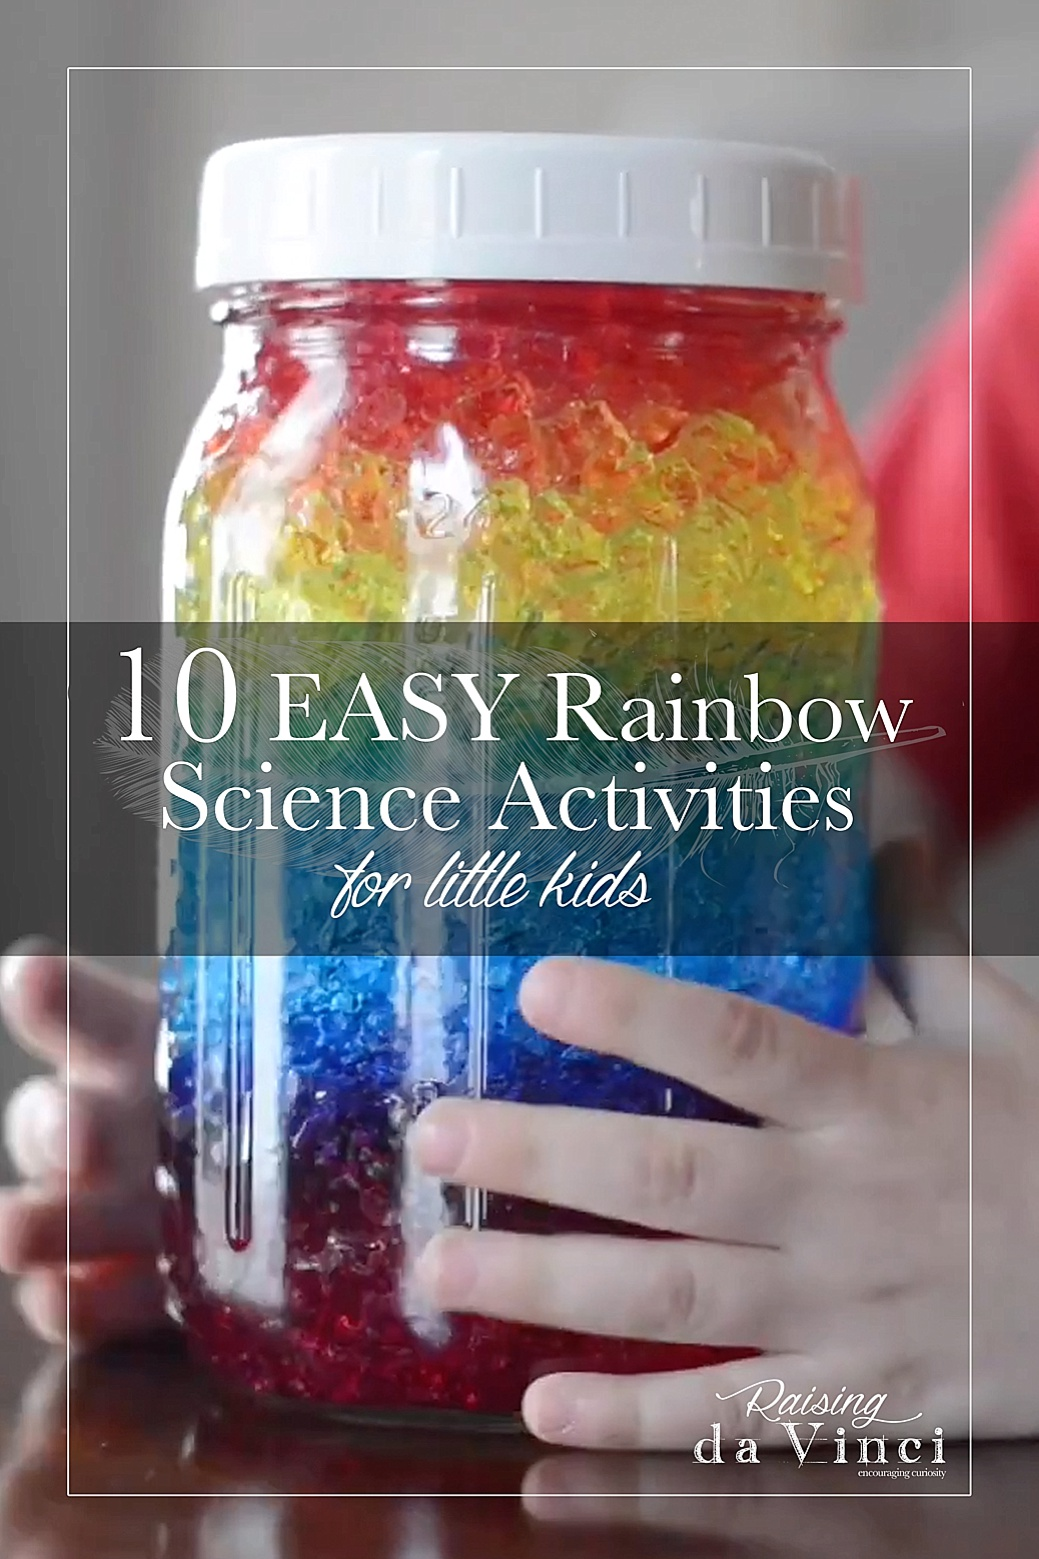 10 easy science experiments using balloons. Black Bedroom Furniture Sets. Home Design Ideas